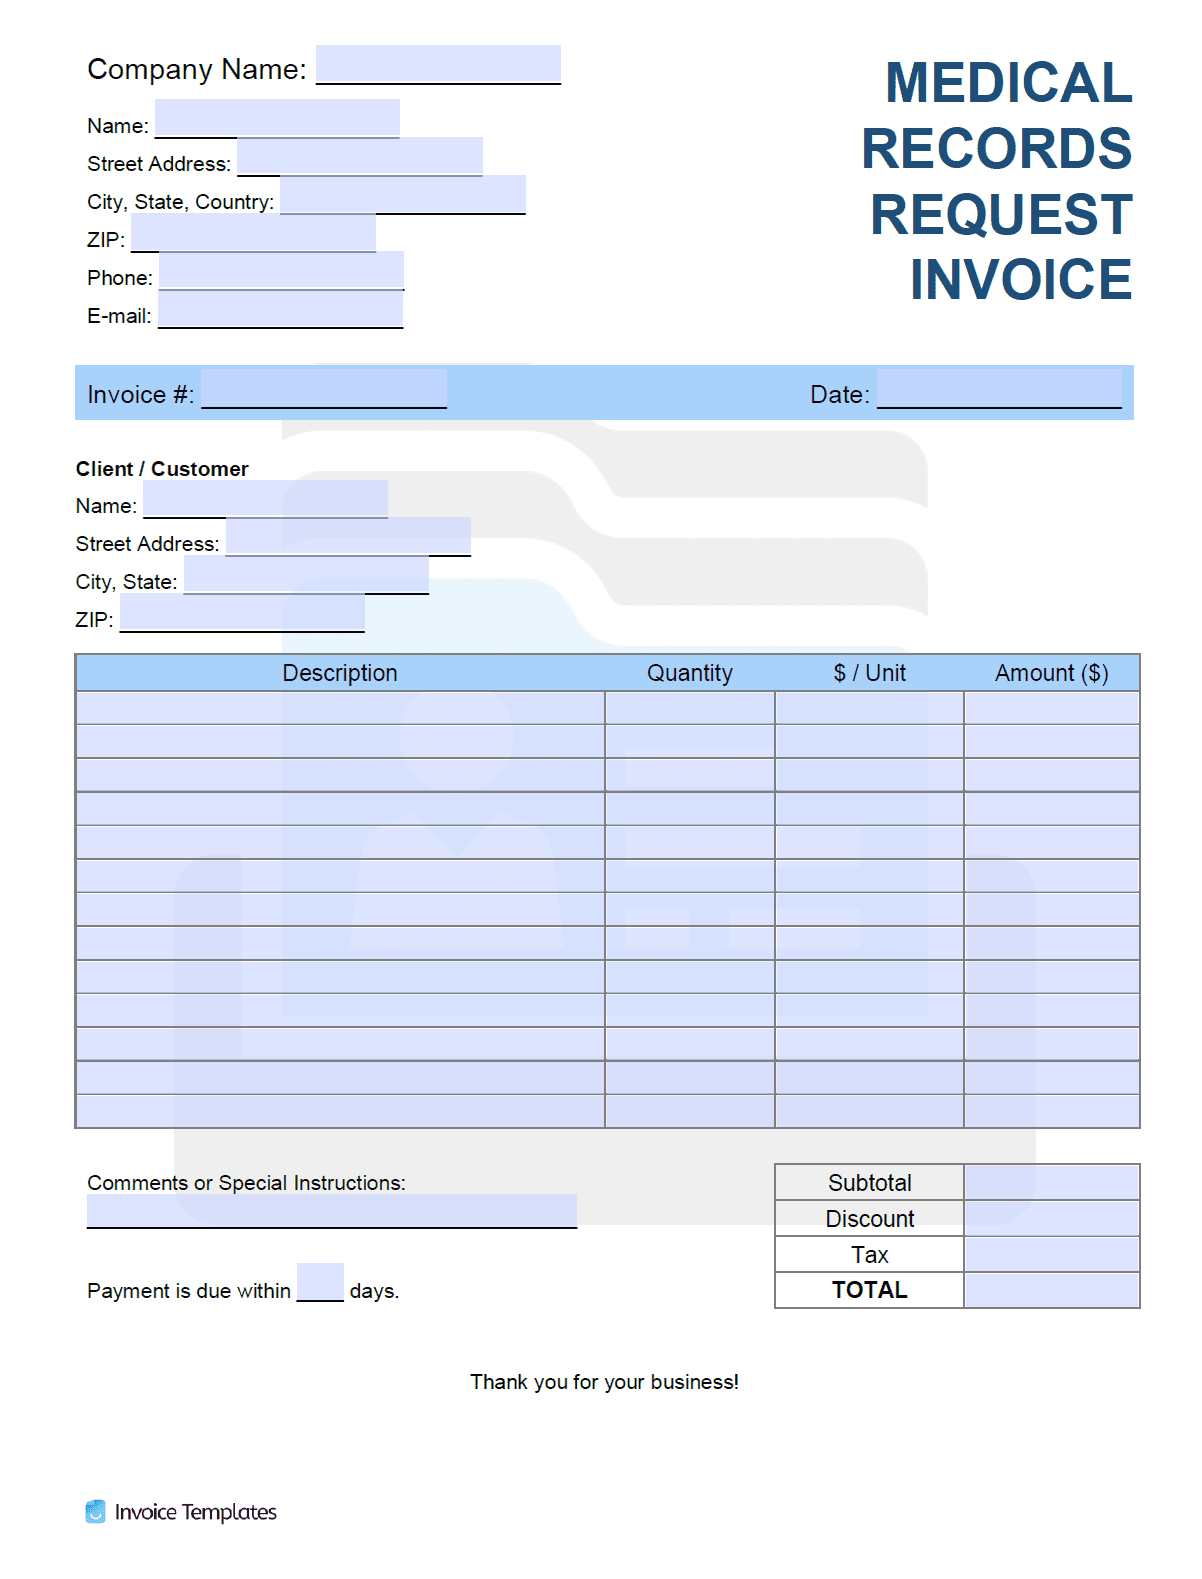 Free Medical Records Request Invoice Template  PDF  WORD  EXCEL Within Medical History Template Word